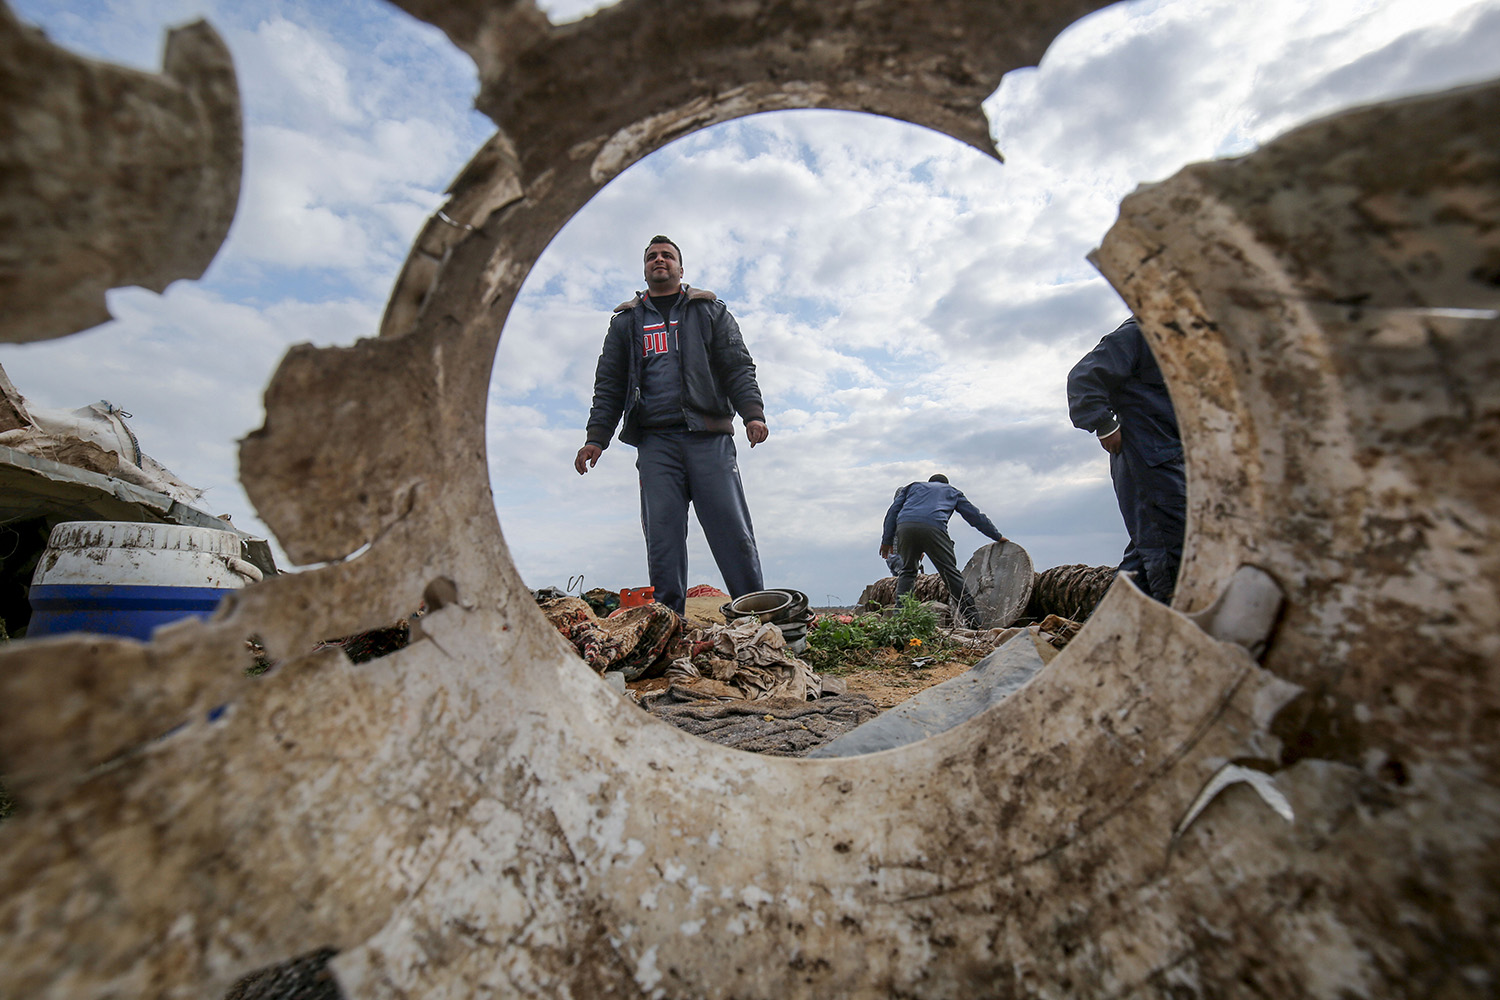 Palestinians salvage belongings from the site of an Israeli airstrike east of Khan Yunis in the southern Gaza Strip on Feb. 25. SAID KHATIB/AFP via Getty Images